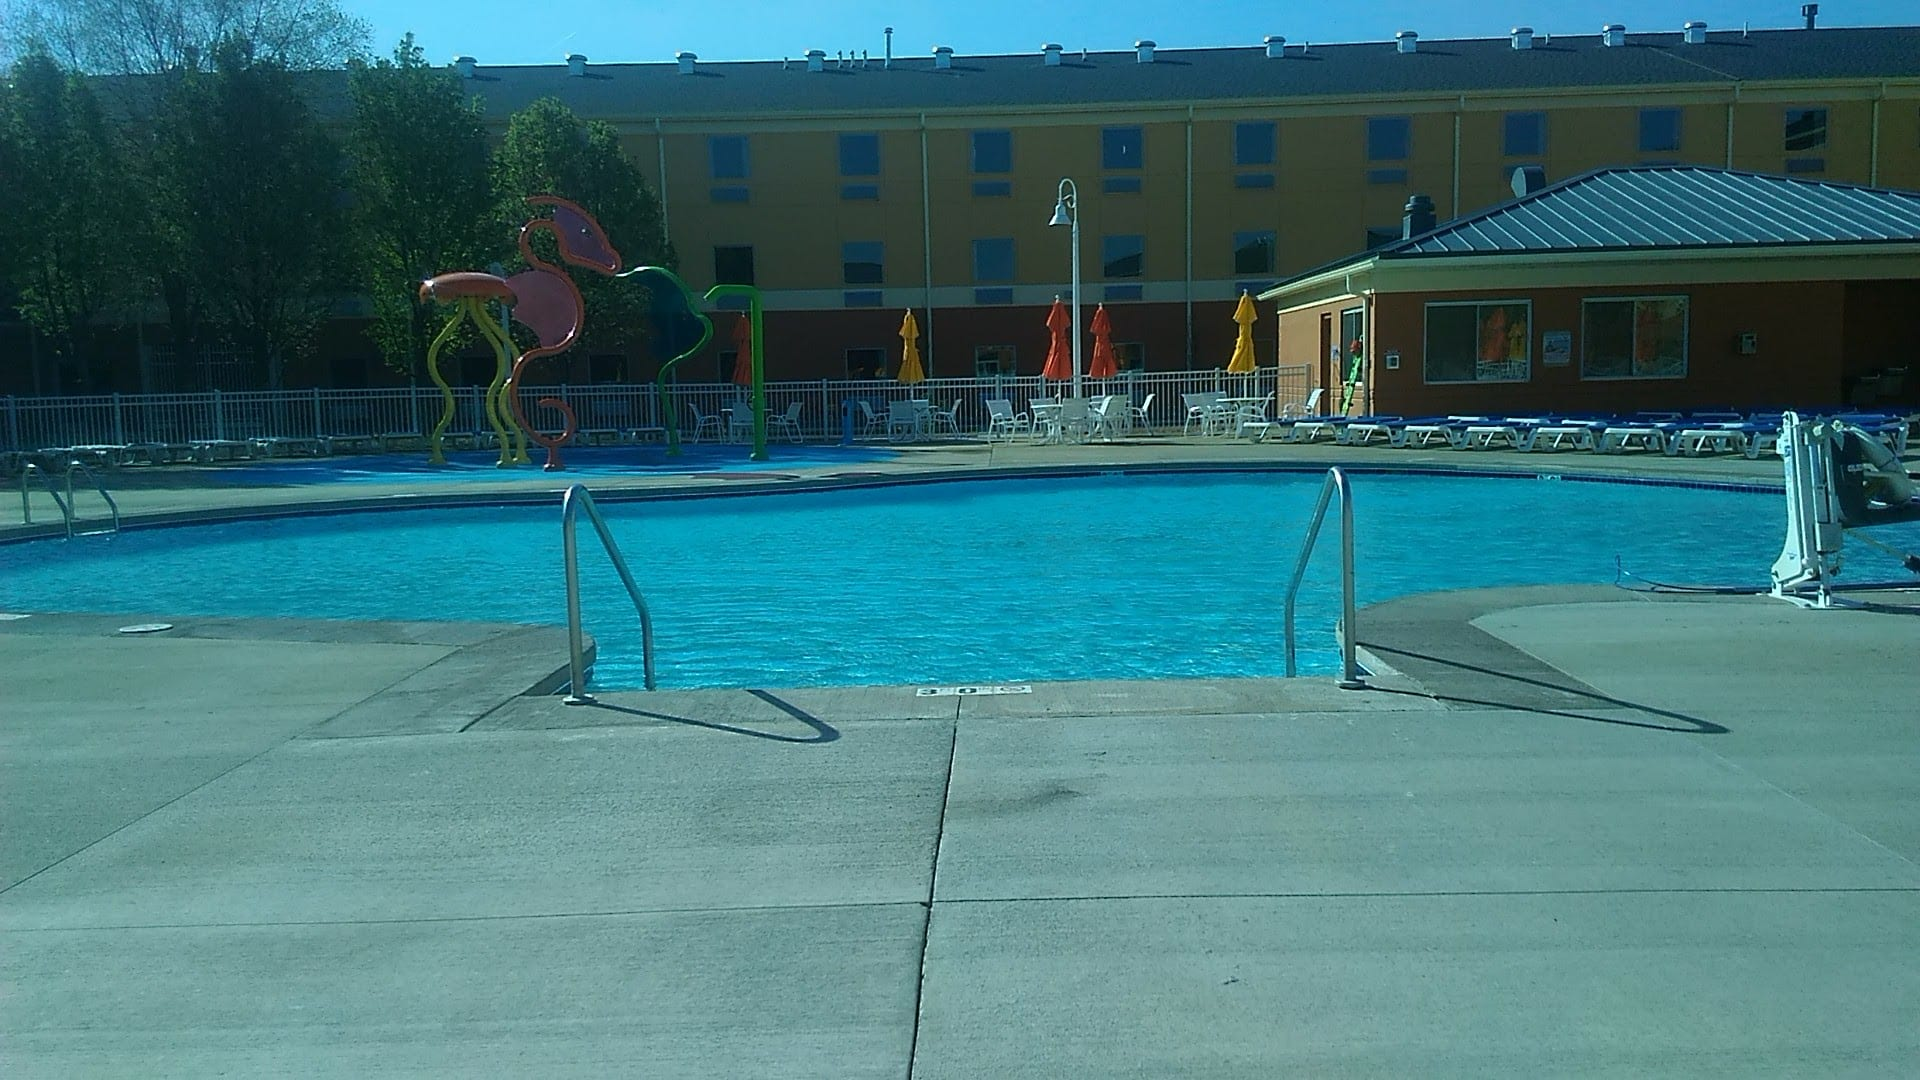 Commercial Inground Pools in Westlake, Shaker & Rocky River, OH - Ohio Custom Pool & Patio